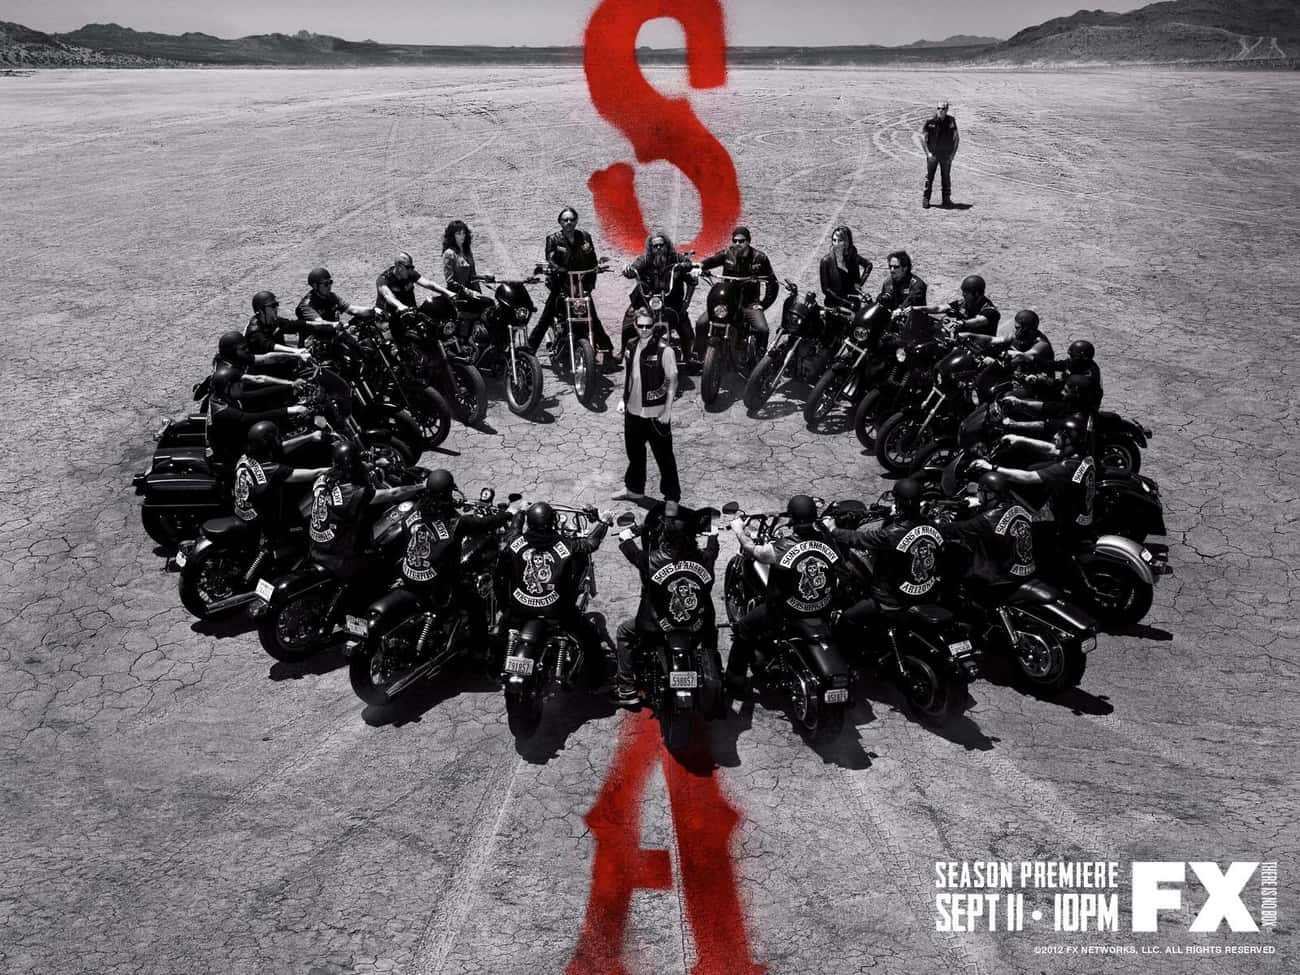 Sons of Anarchy Became FX's Highest Rated Show Ever